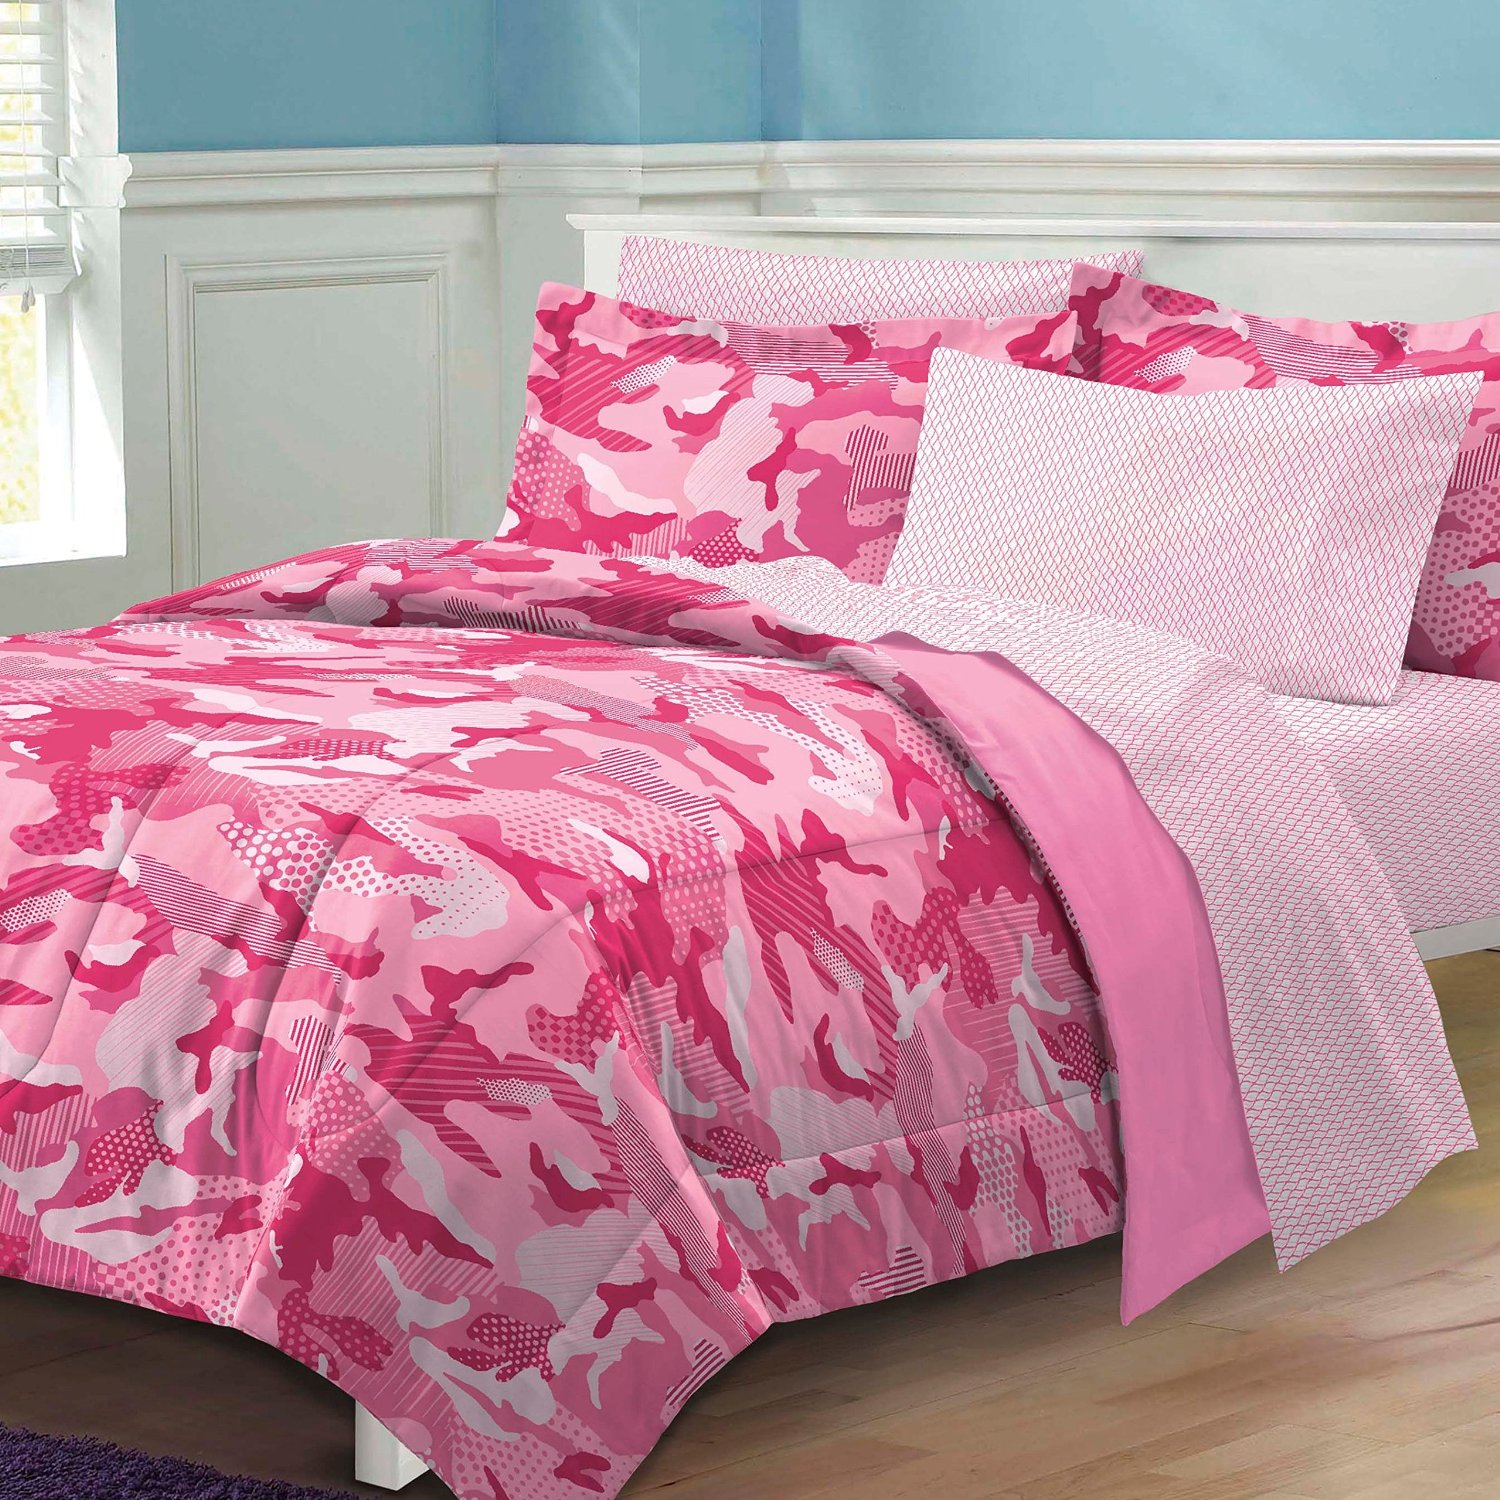 Rooms To Go Bedroom Set Pink Camo Camouflage Comforters And Bedding For Girls Amp Teens